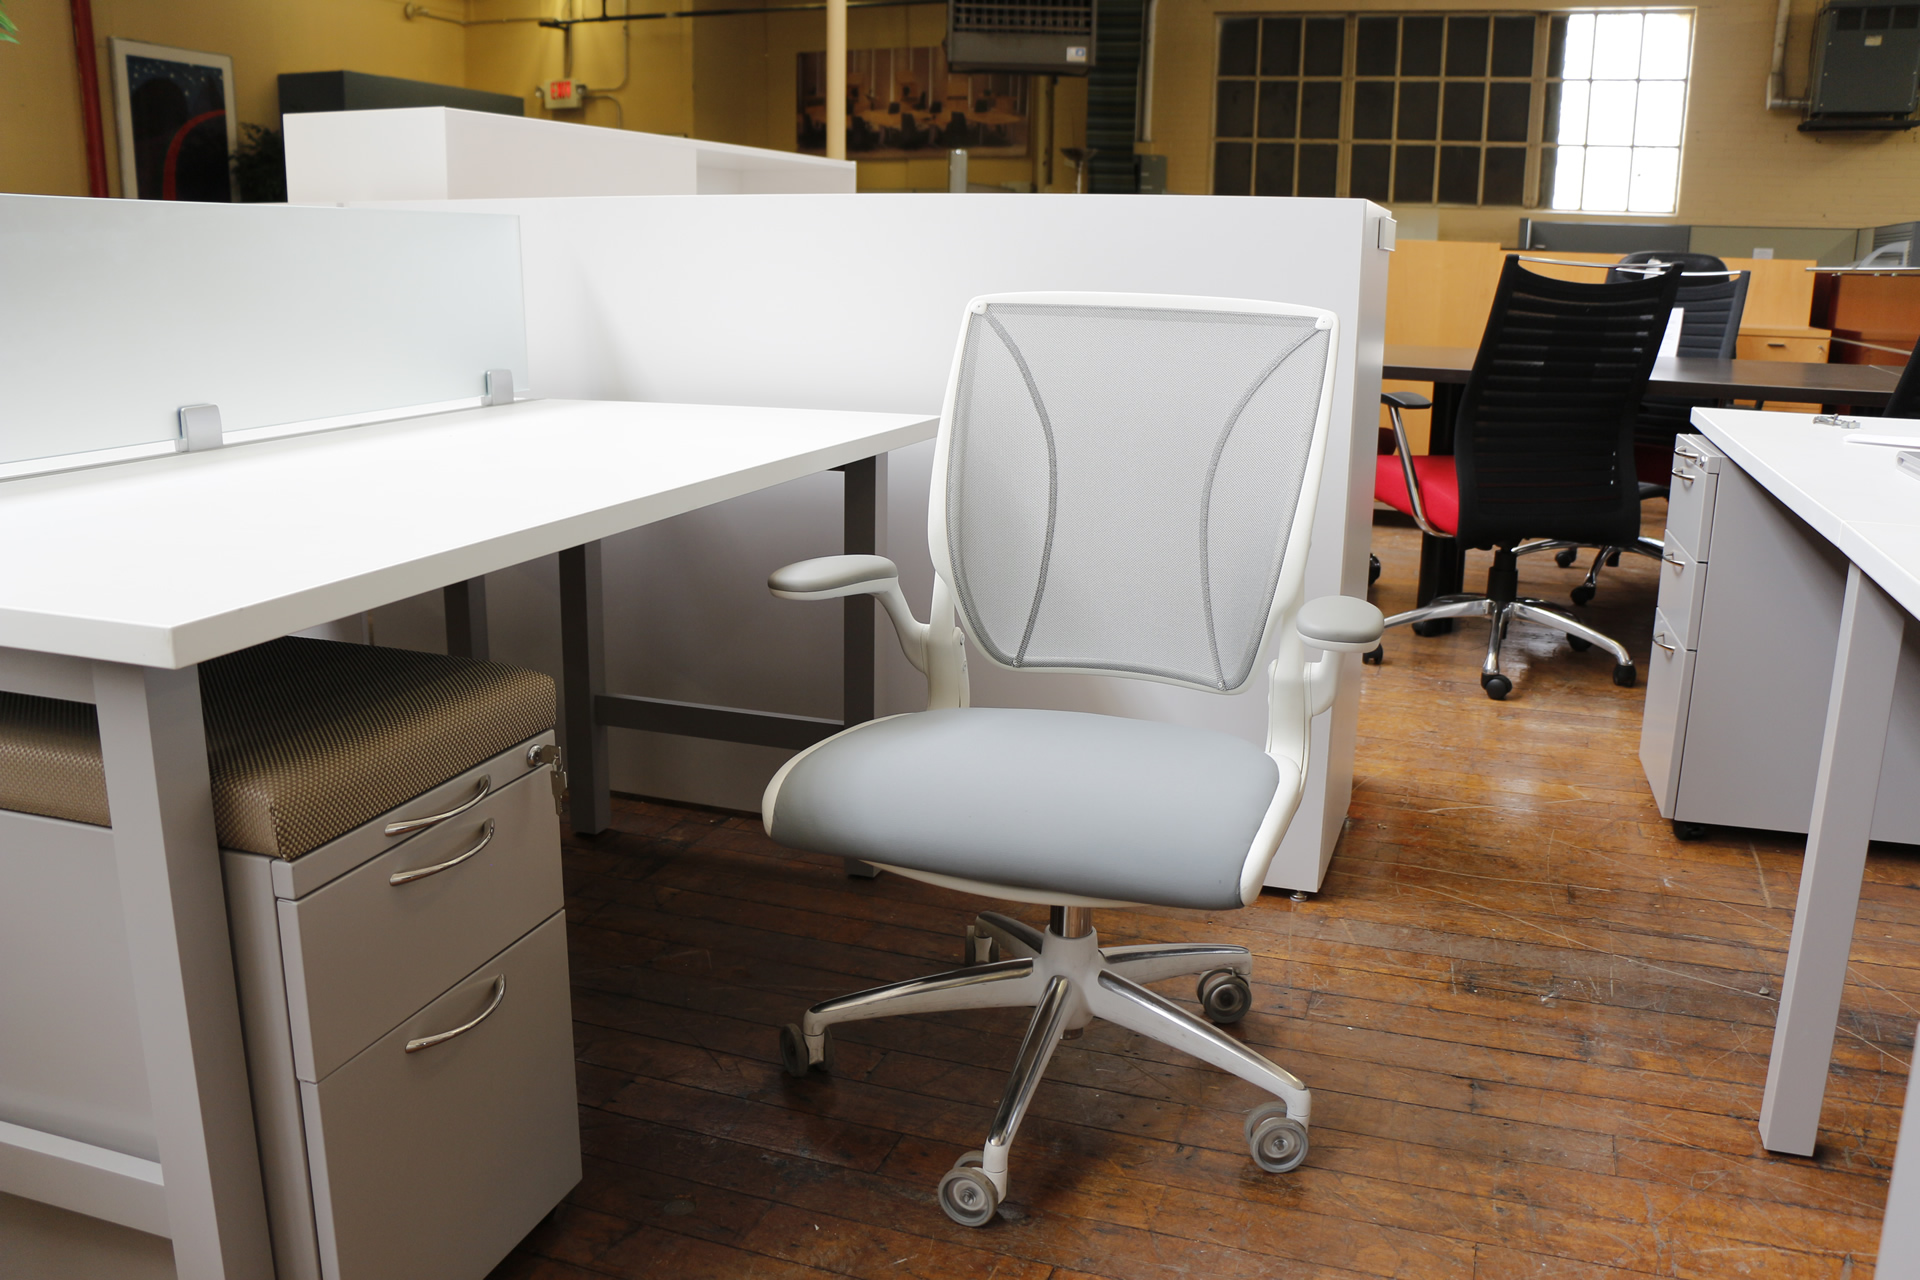 peartreeofficefurniture_peartreeofficefurniture_mg_5106.jpg